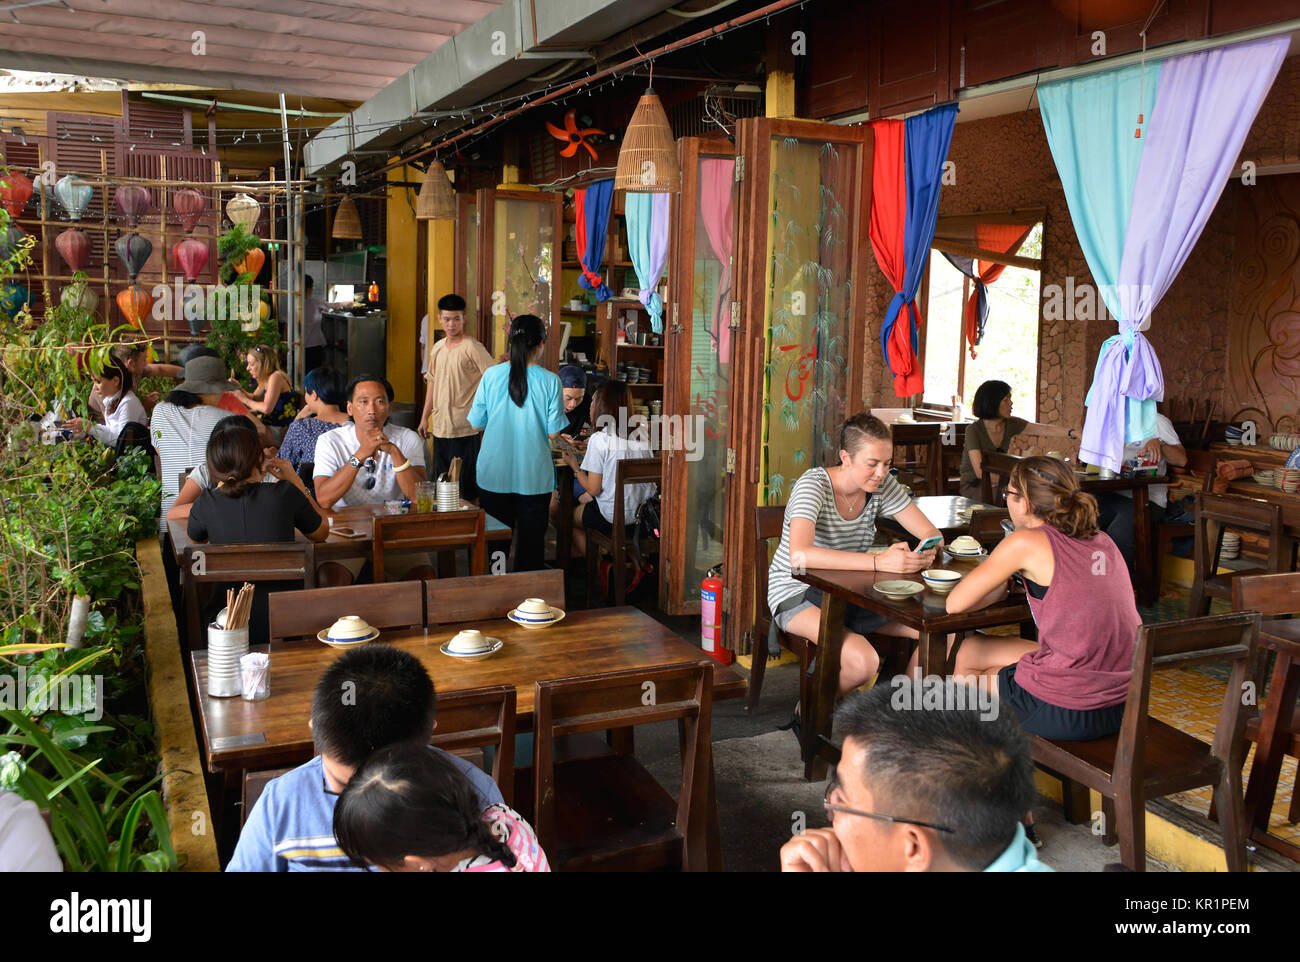 The Secret Garden Restaurant High Resolution Stock Photography And Images Alamy